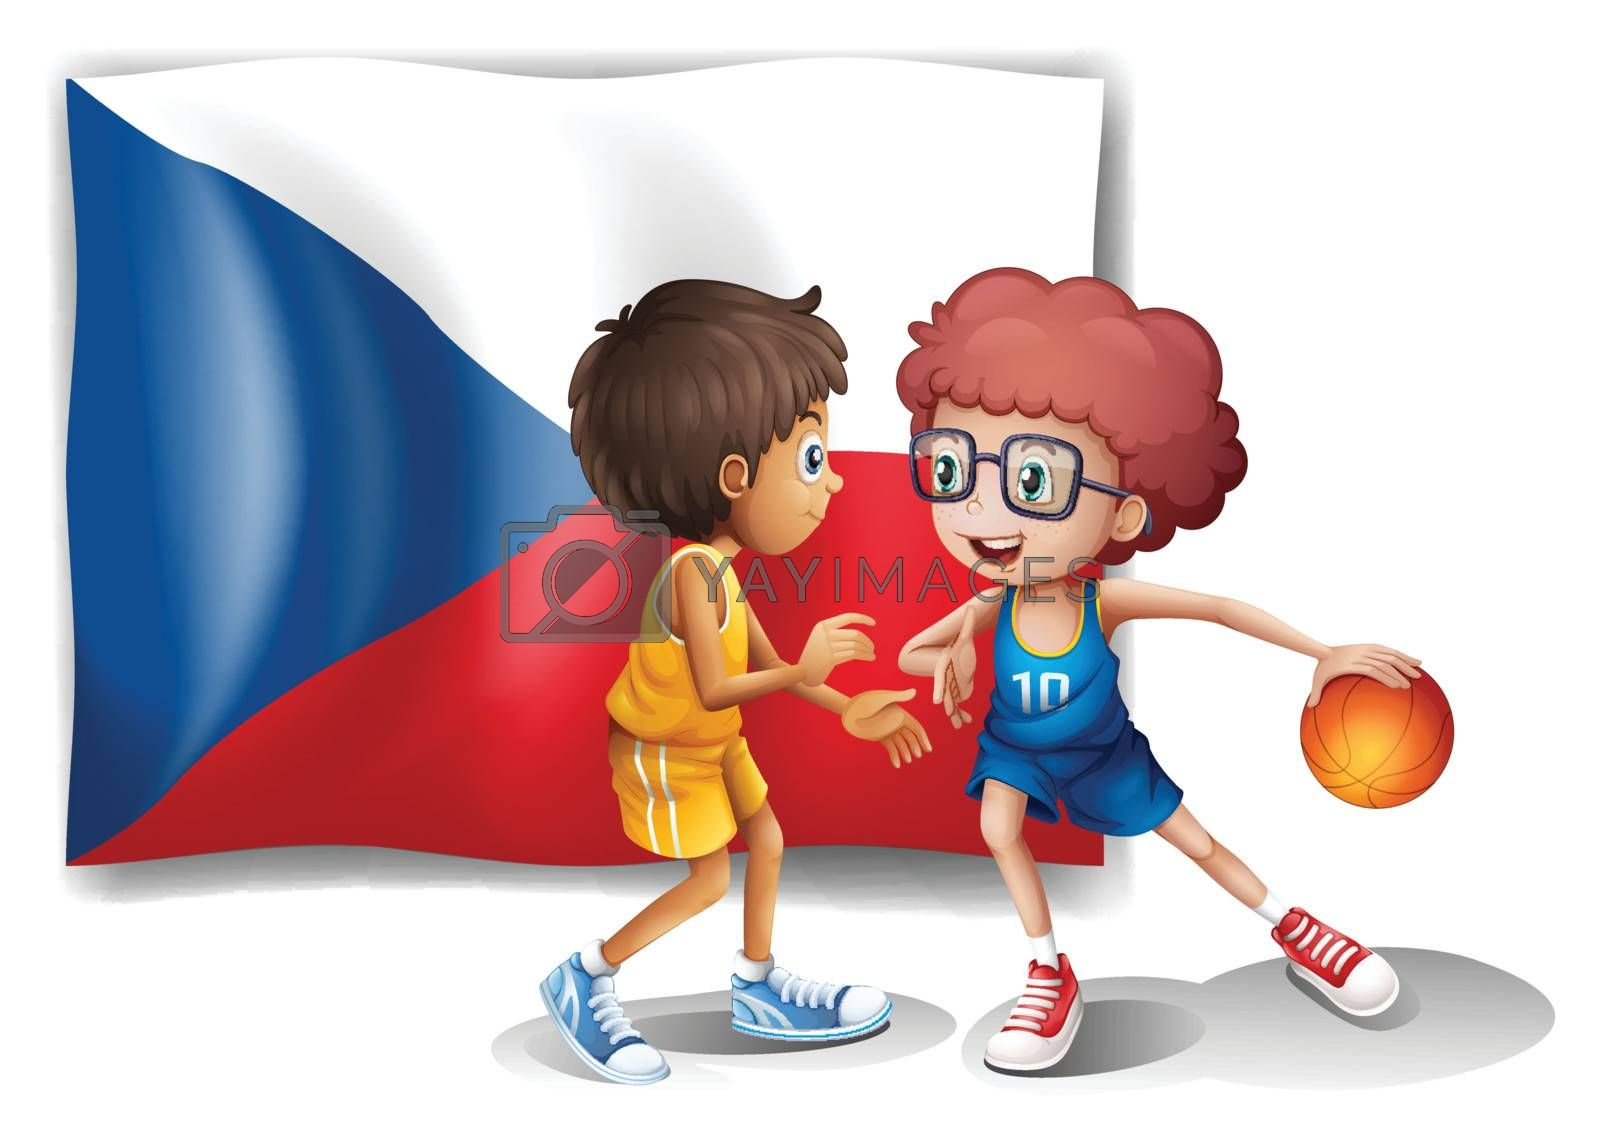 Illustration of the basketball players in front of the Czech Republic flag on a white background